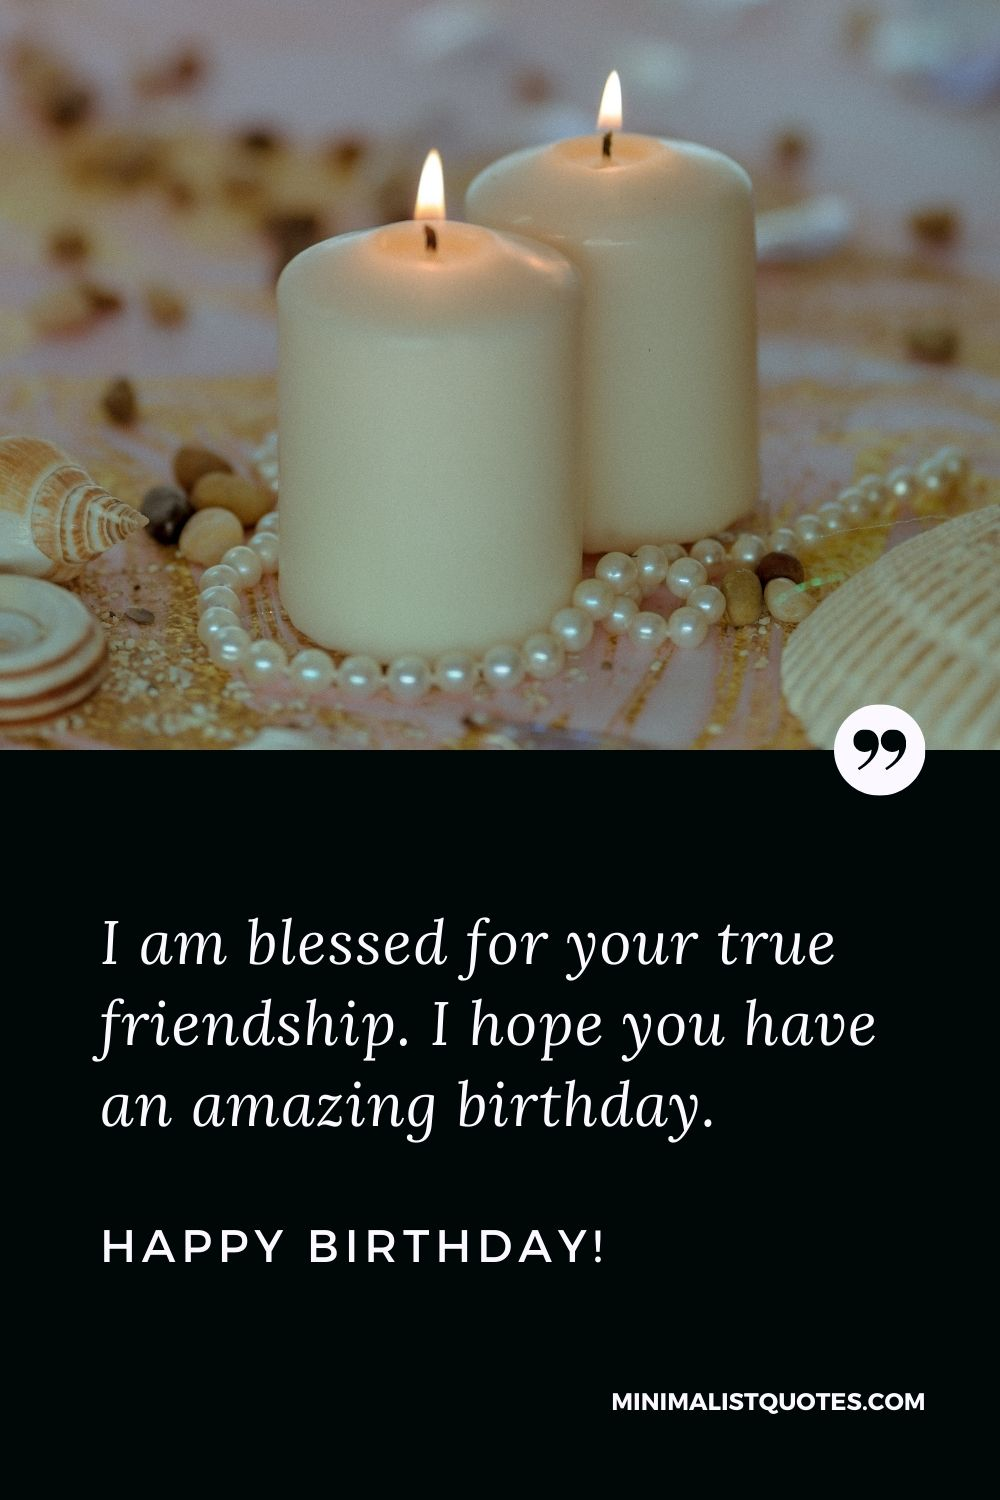 Best friend birthday quote: I am blessed for your true friendship. I hope you have an amazing birthday. Happy Birthday!